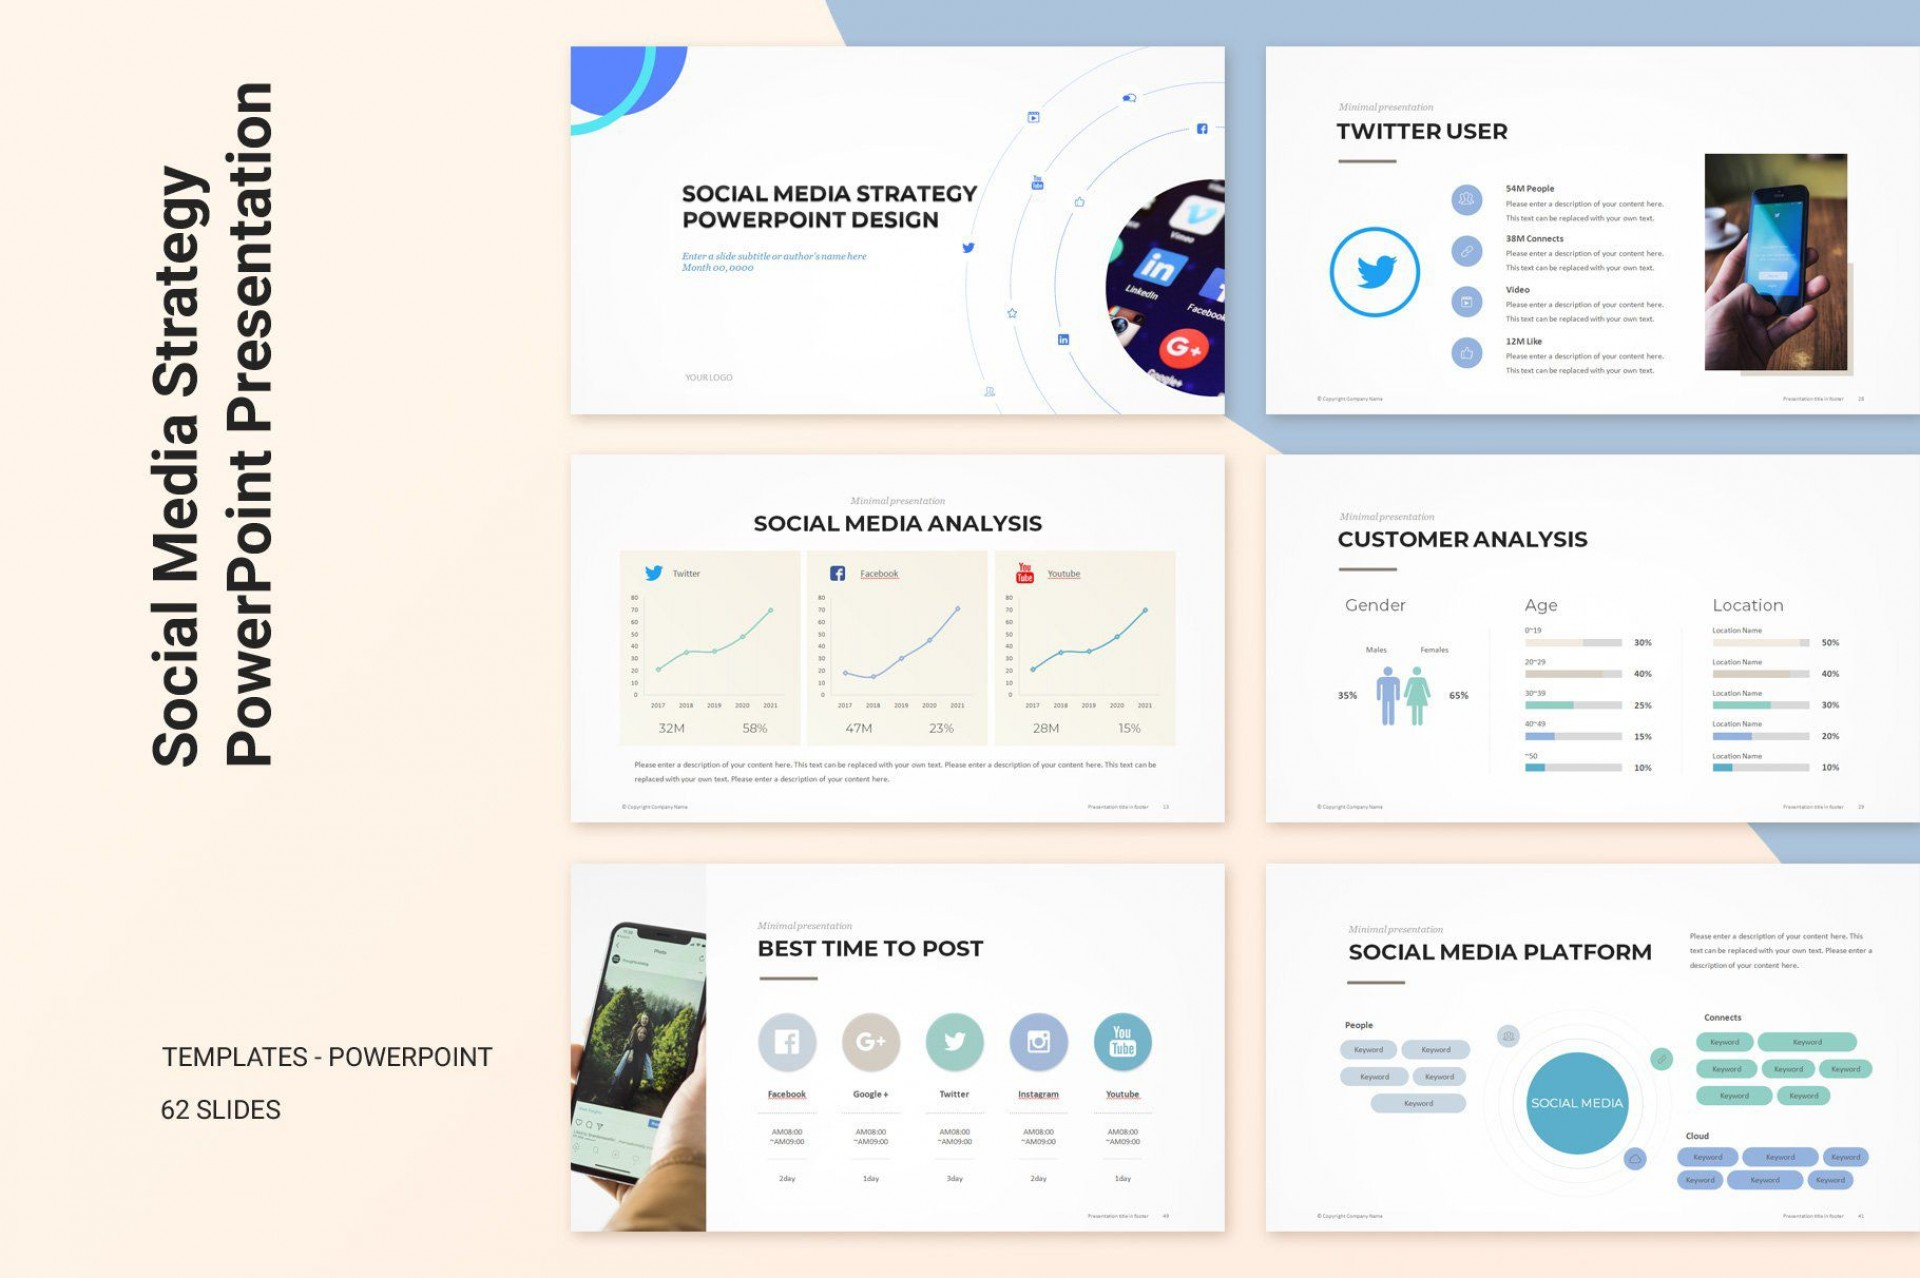 009 Fascinating Social Media Strategy Powerpoint Template Example  Marketing Plan Free1920